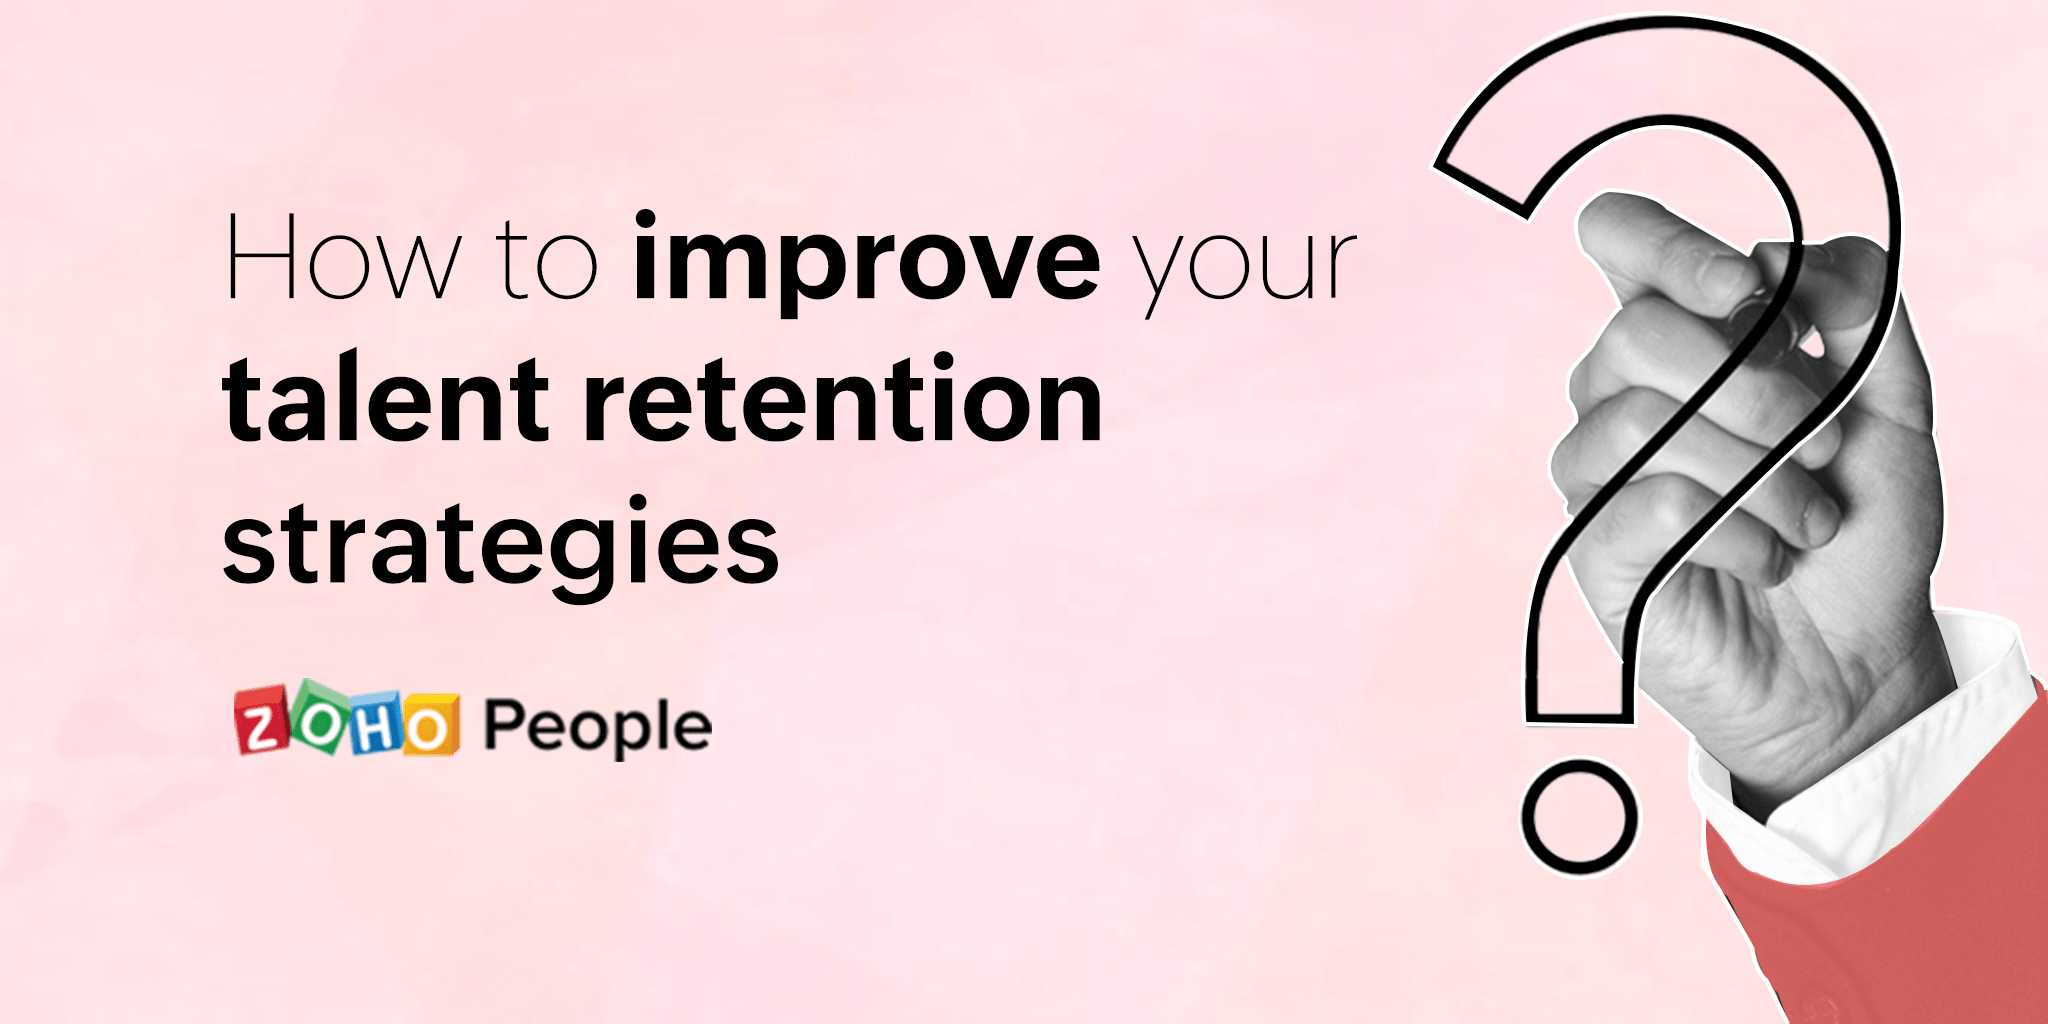 Talent retention strategies